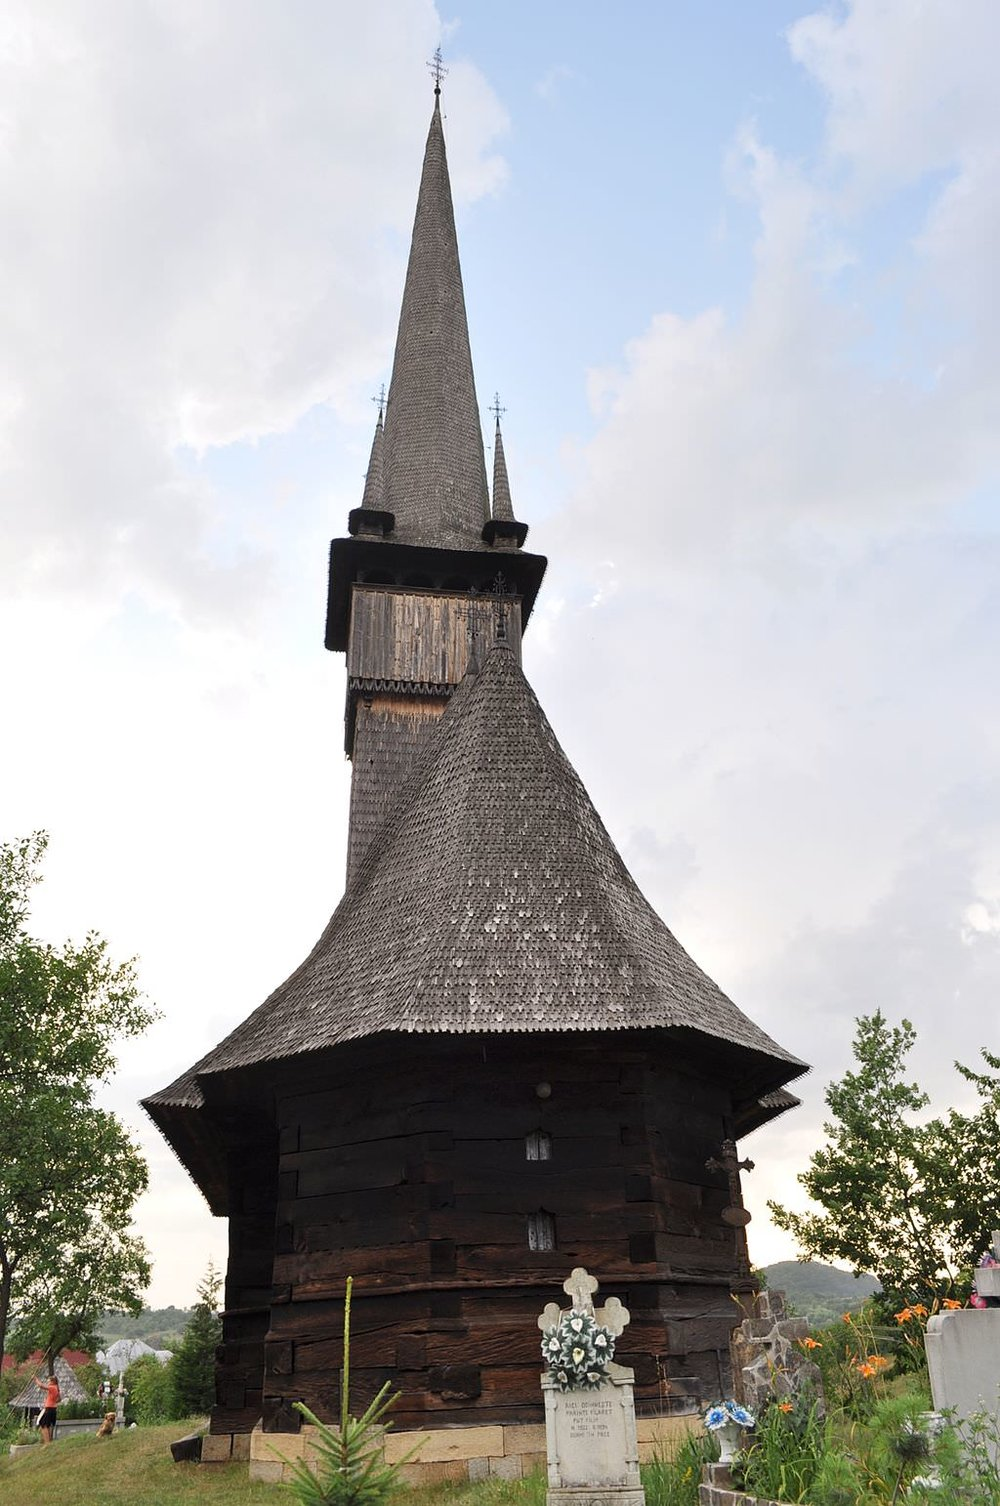 The Wooden Church of Plopis Sisesti (copyright: creative commons)